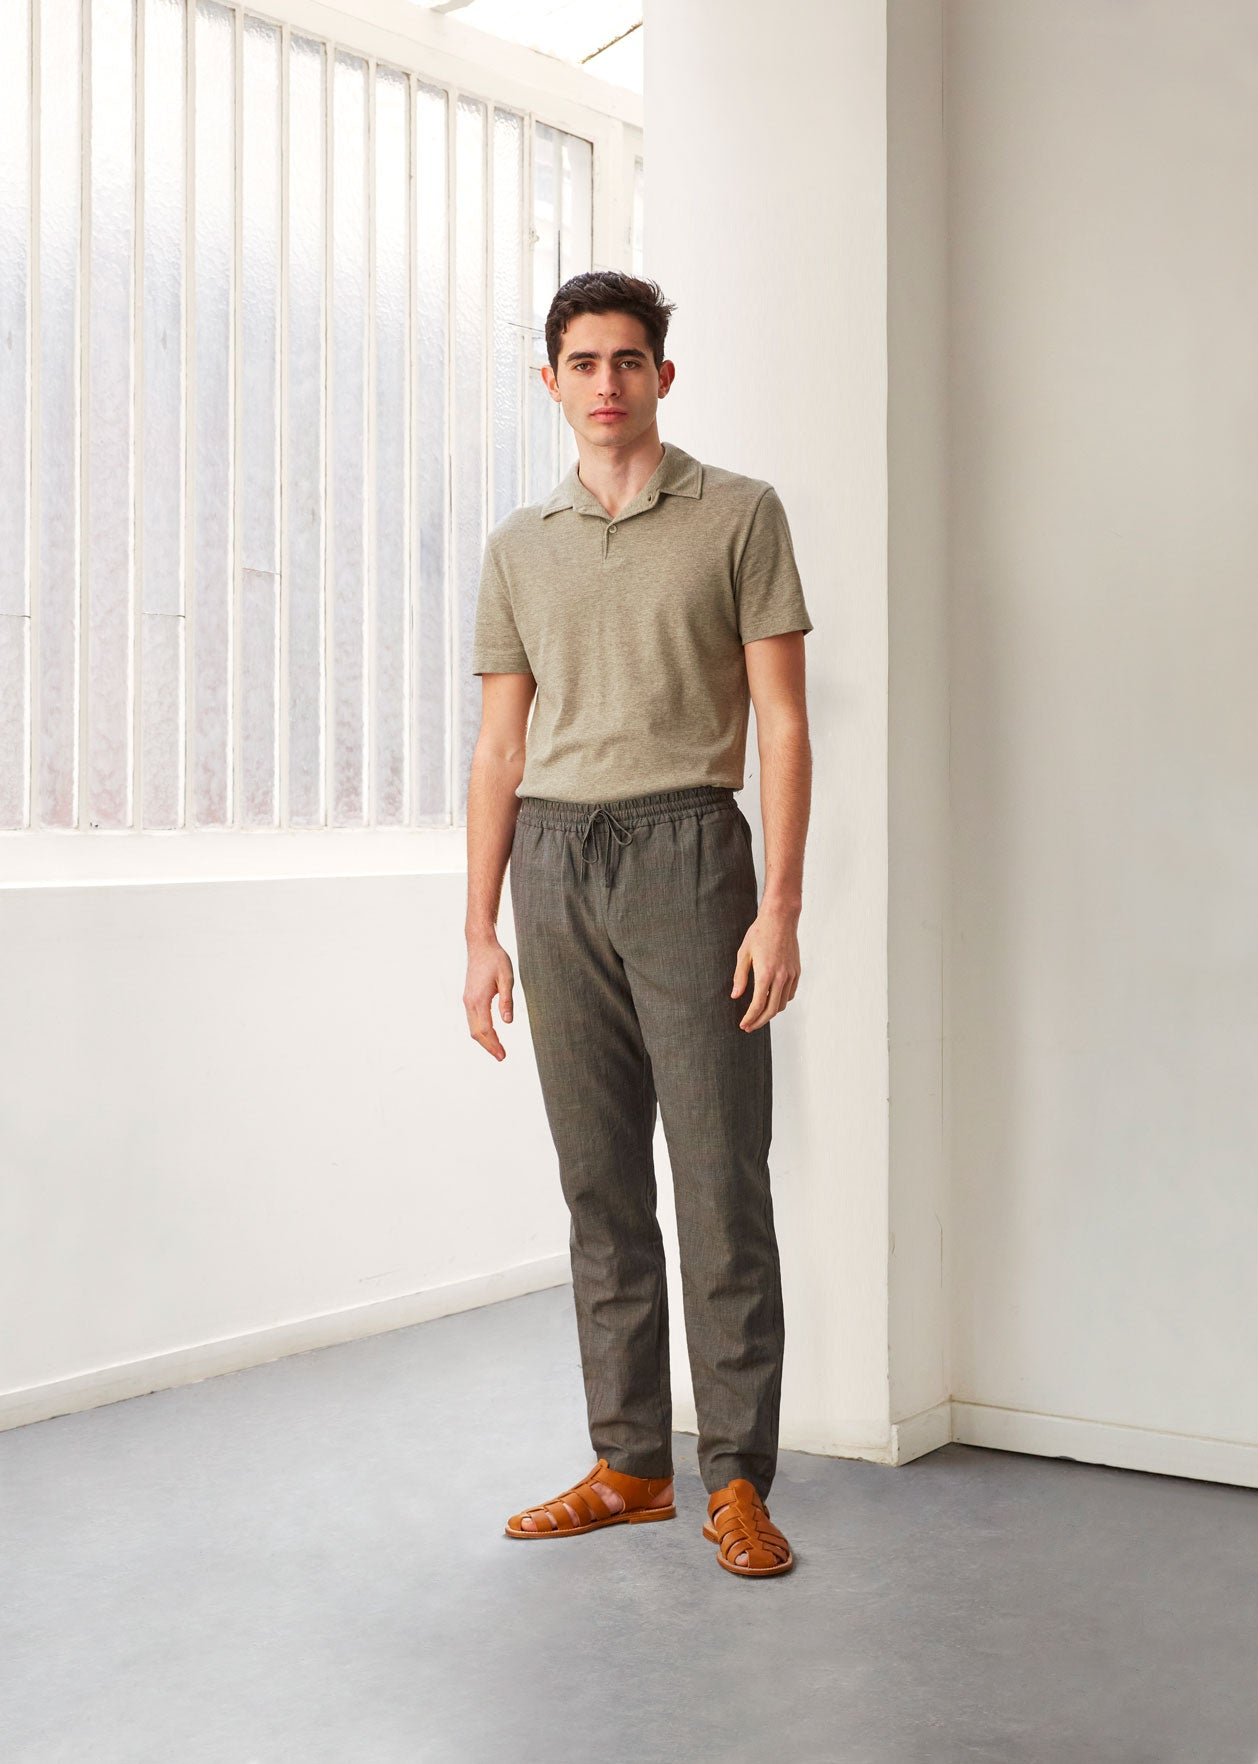 Relaxed trousers - Linen and wool blend - Green glencheck - De Bonne Facture